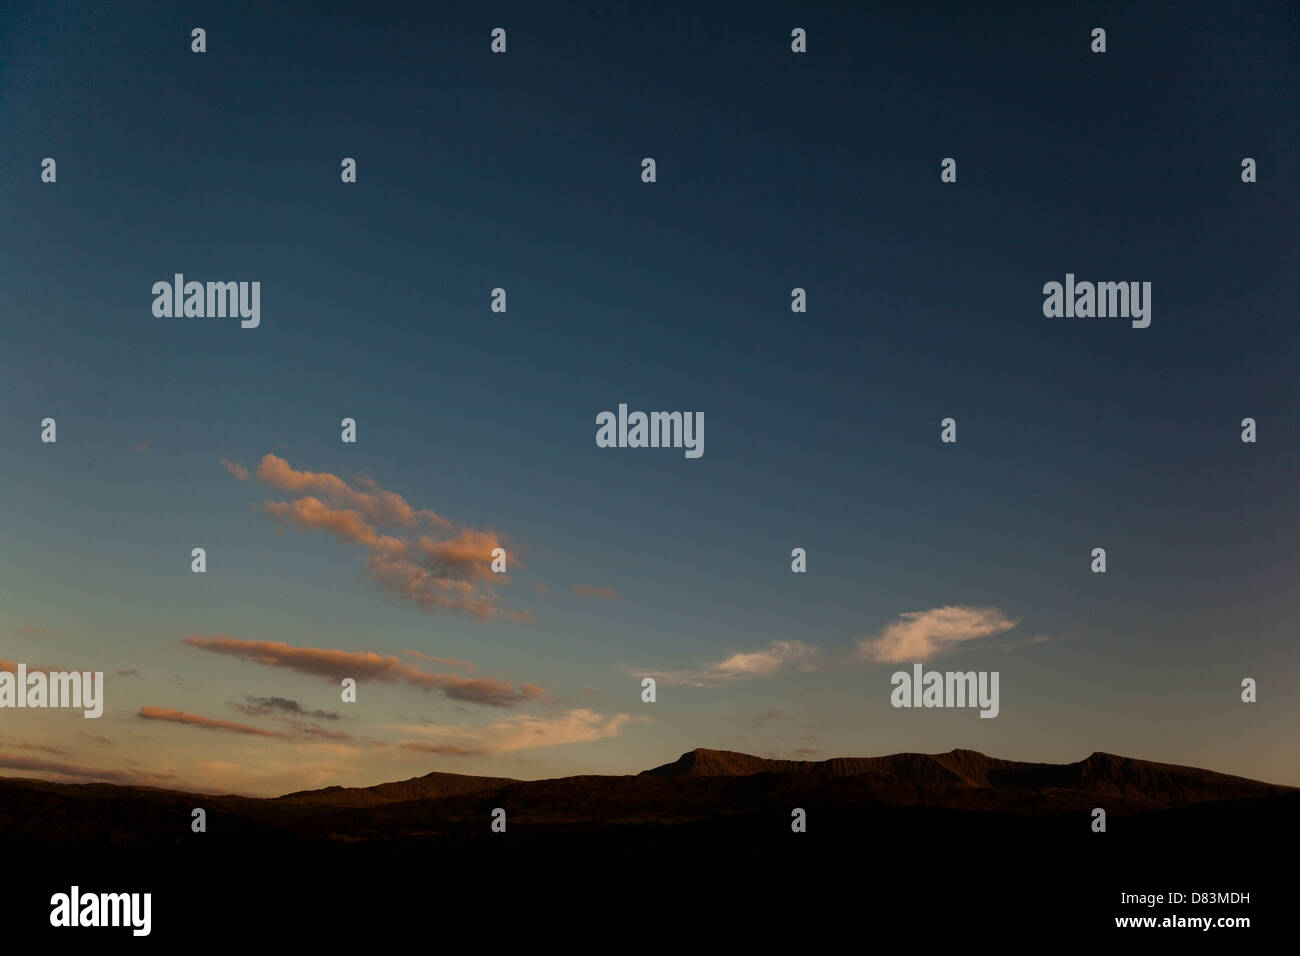 Cadiar Idris cader idris at sunset with low clouds abstract shapes lonely skies isolation and freedom Stock Photo